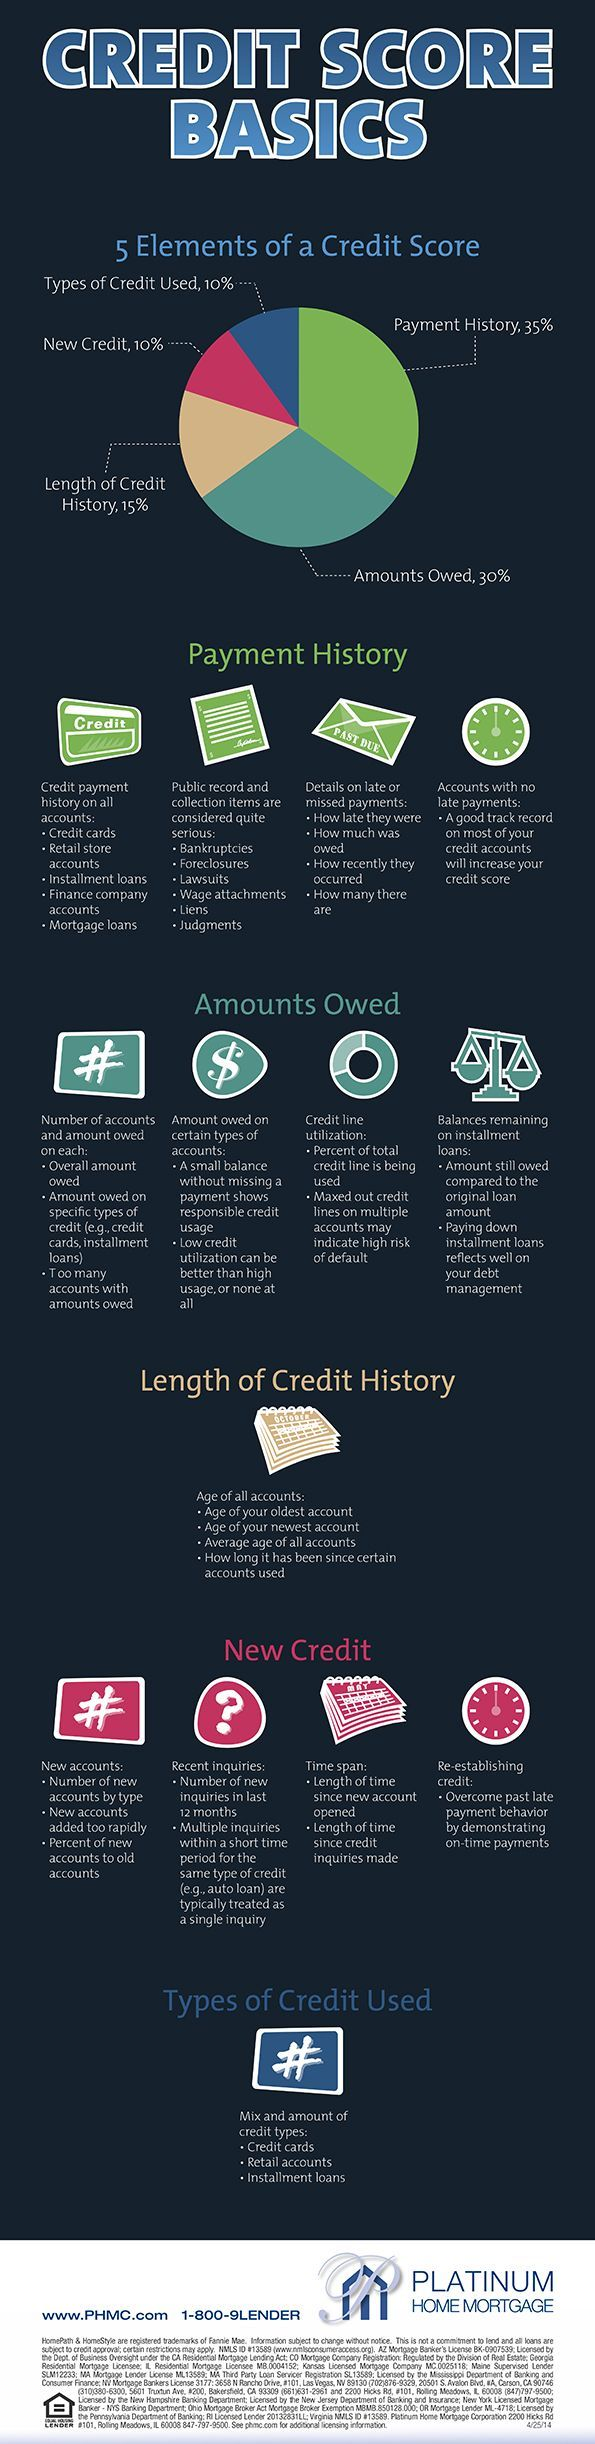 25 unique improve credit score ideas on pinterest fixing credit what credit scores consist of for a kentucky mortgage loan approval for a fha va ccuart Gallery